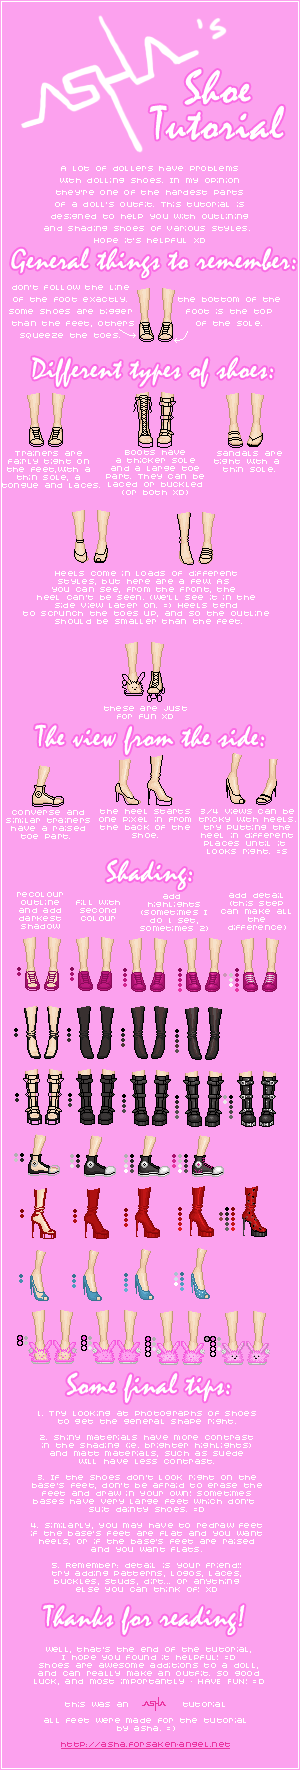 Asha's Shoe Tutorial by Icecradle